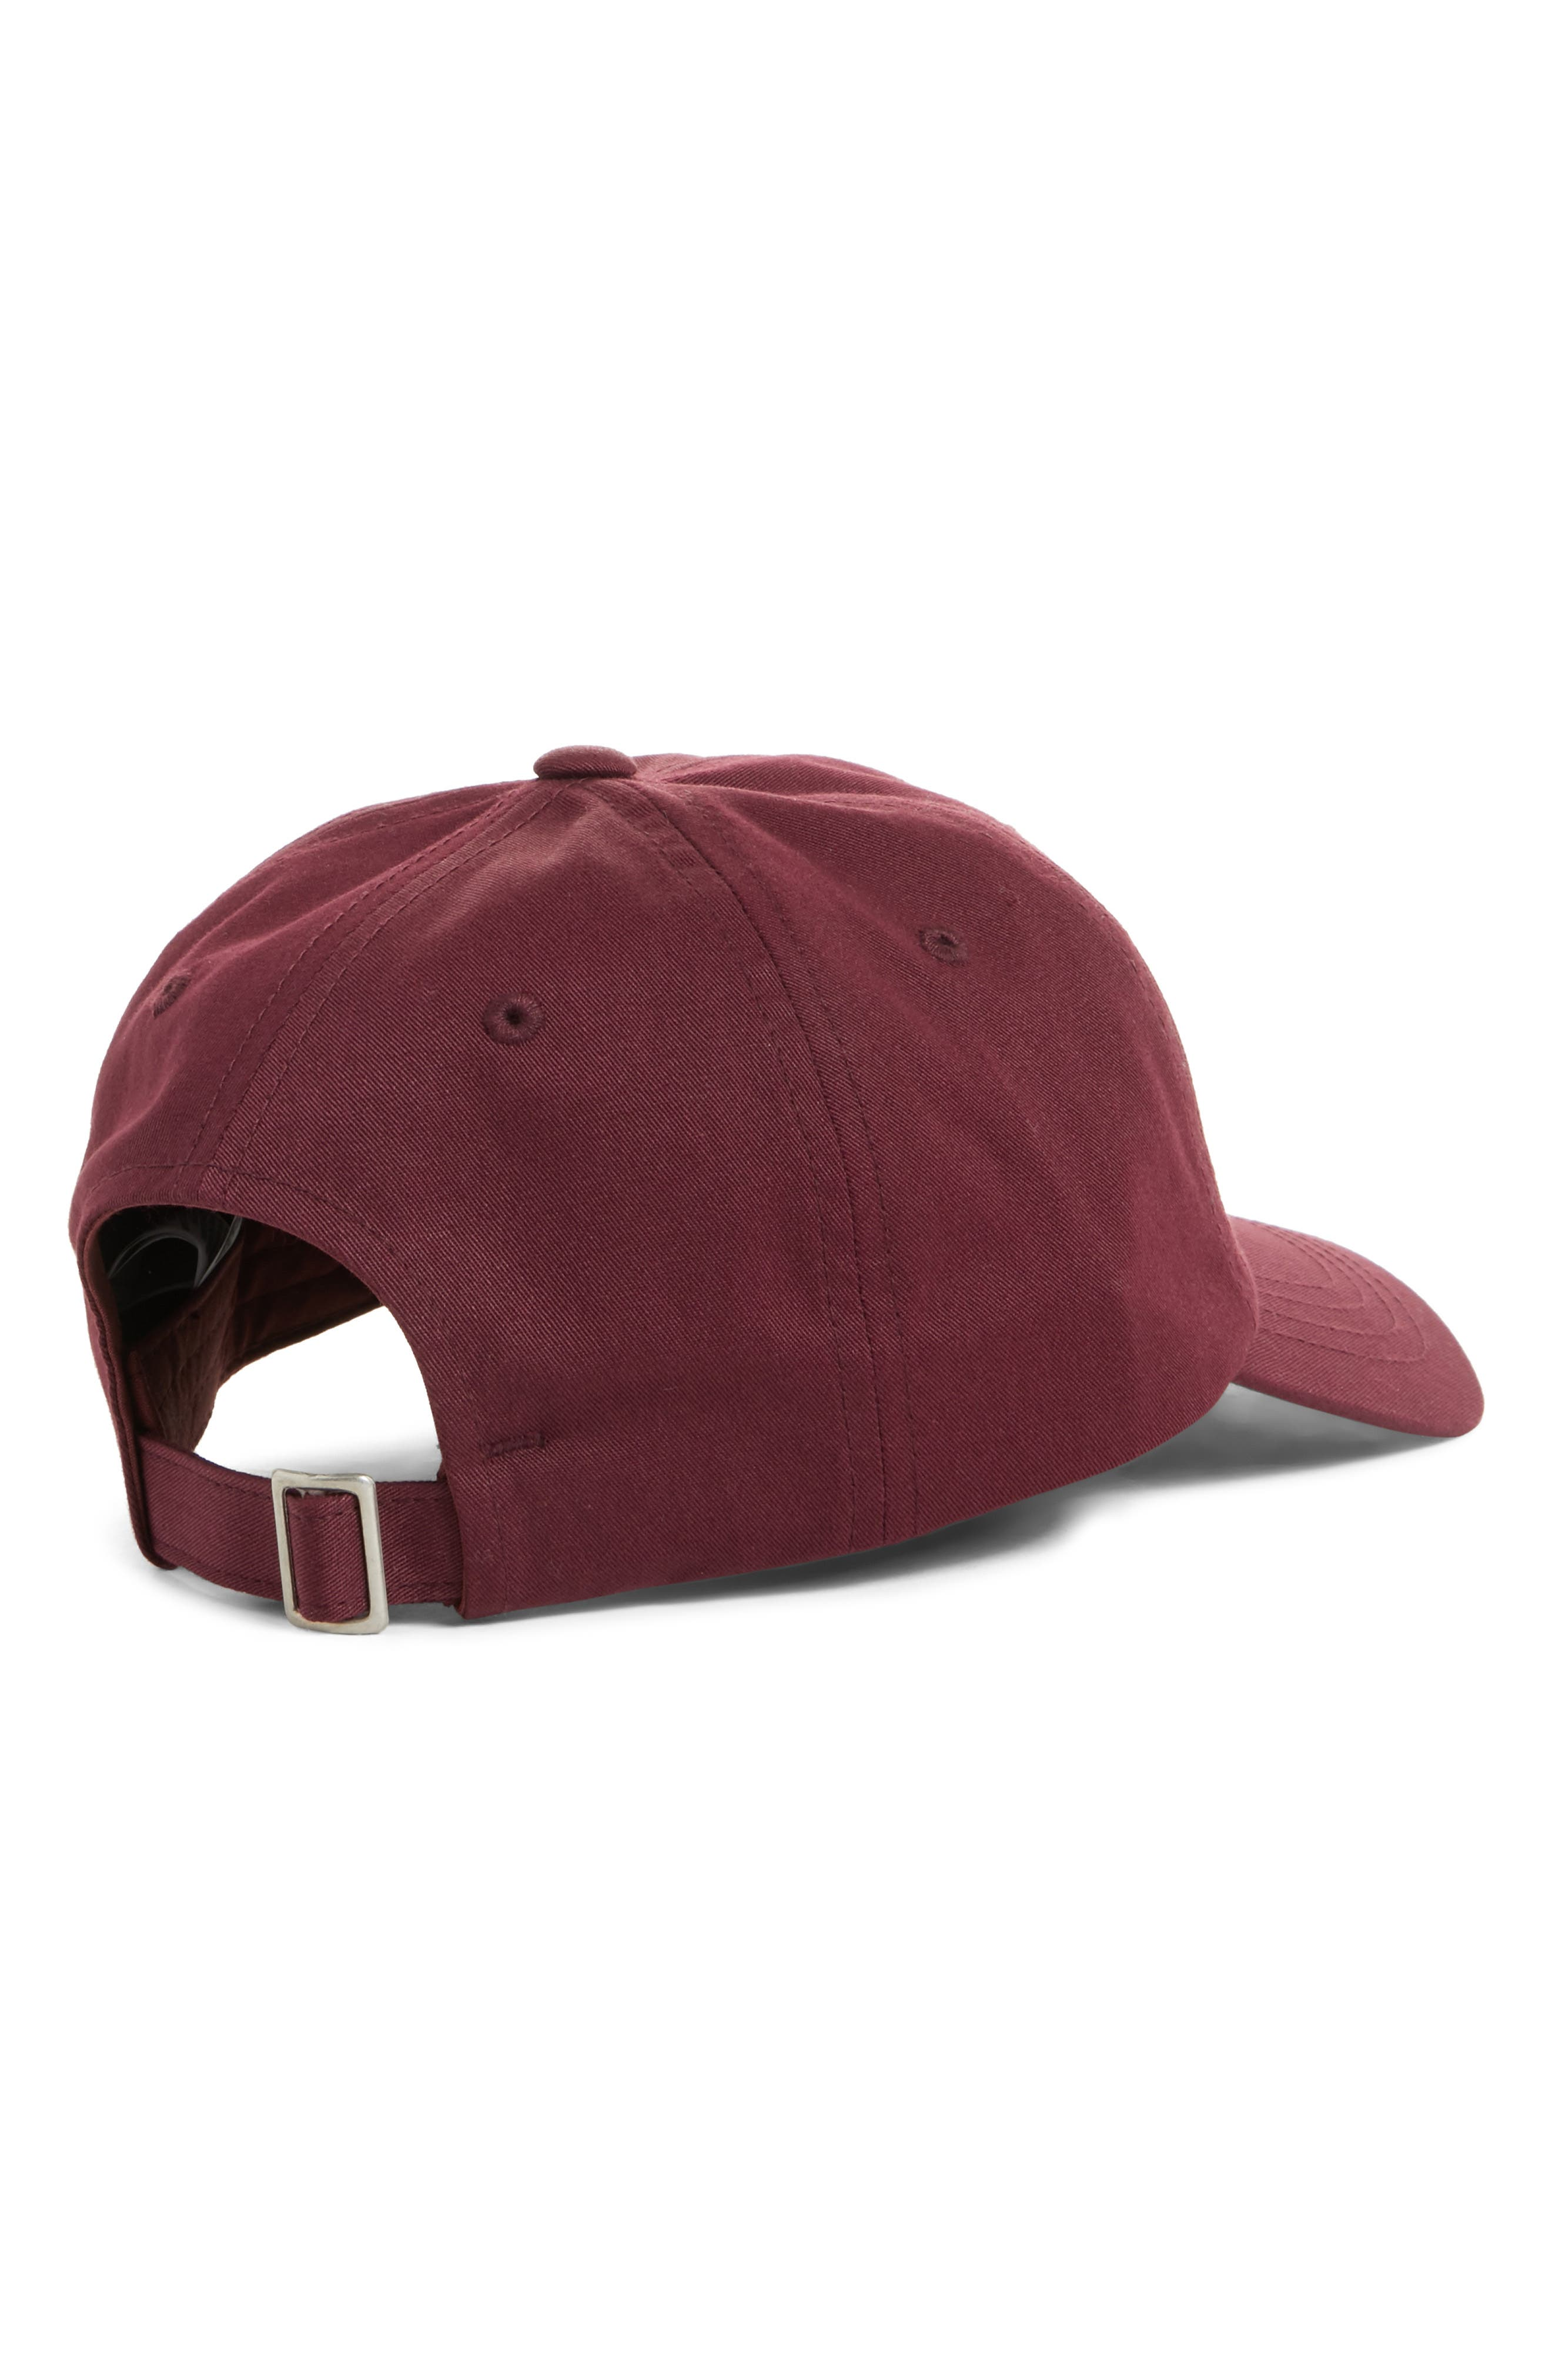 Norm Poppy Embroidered Adjustable Cap,                             Alternate thumbnail 9, color,